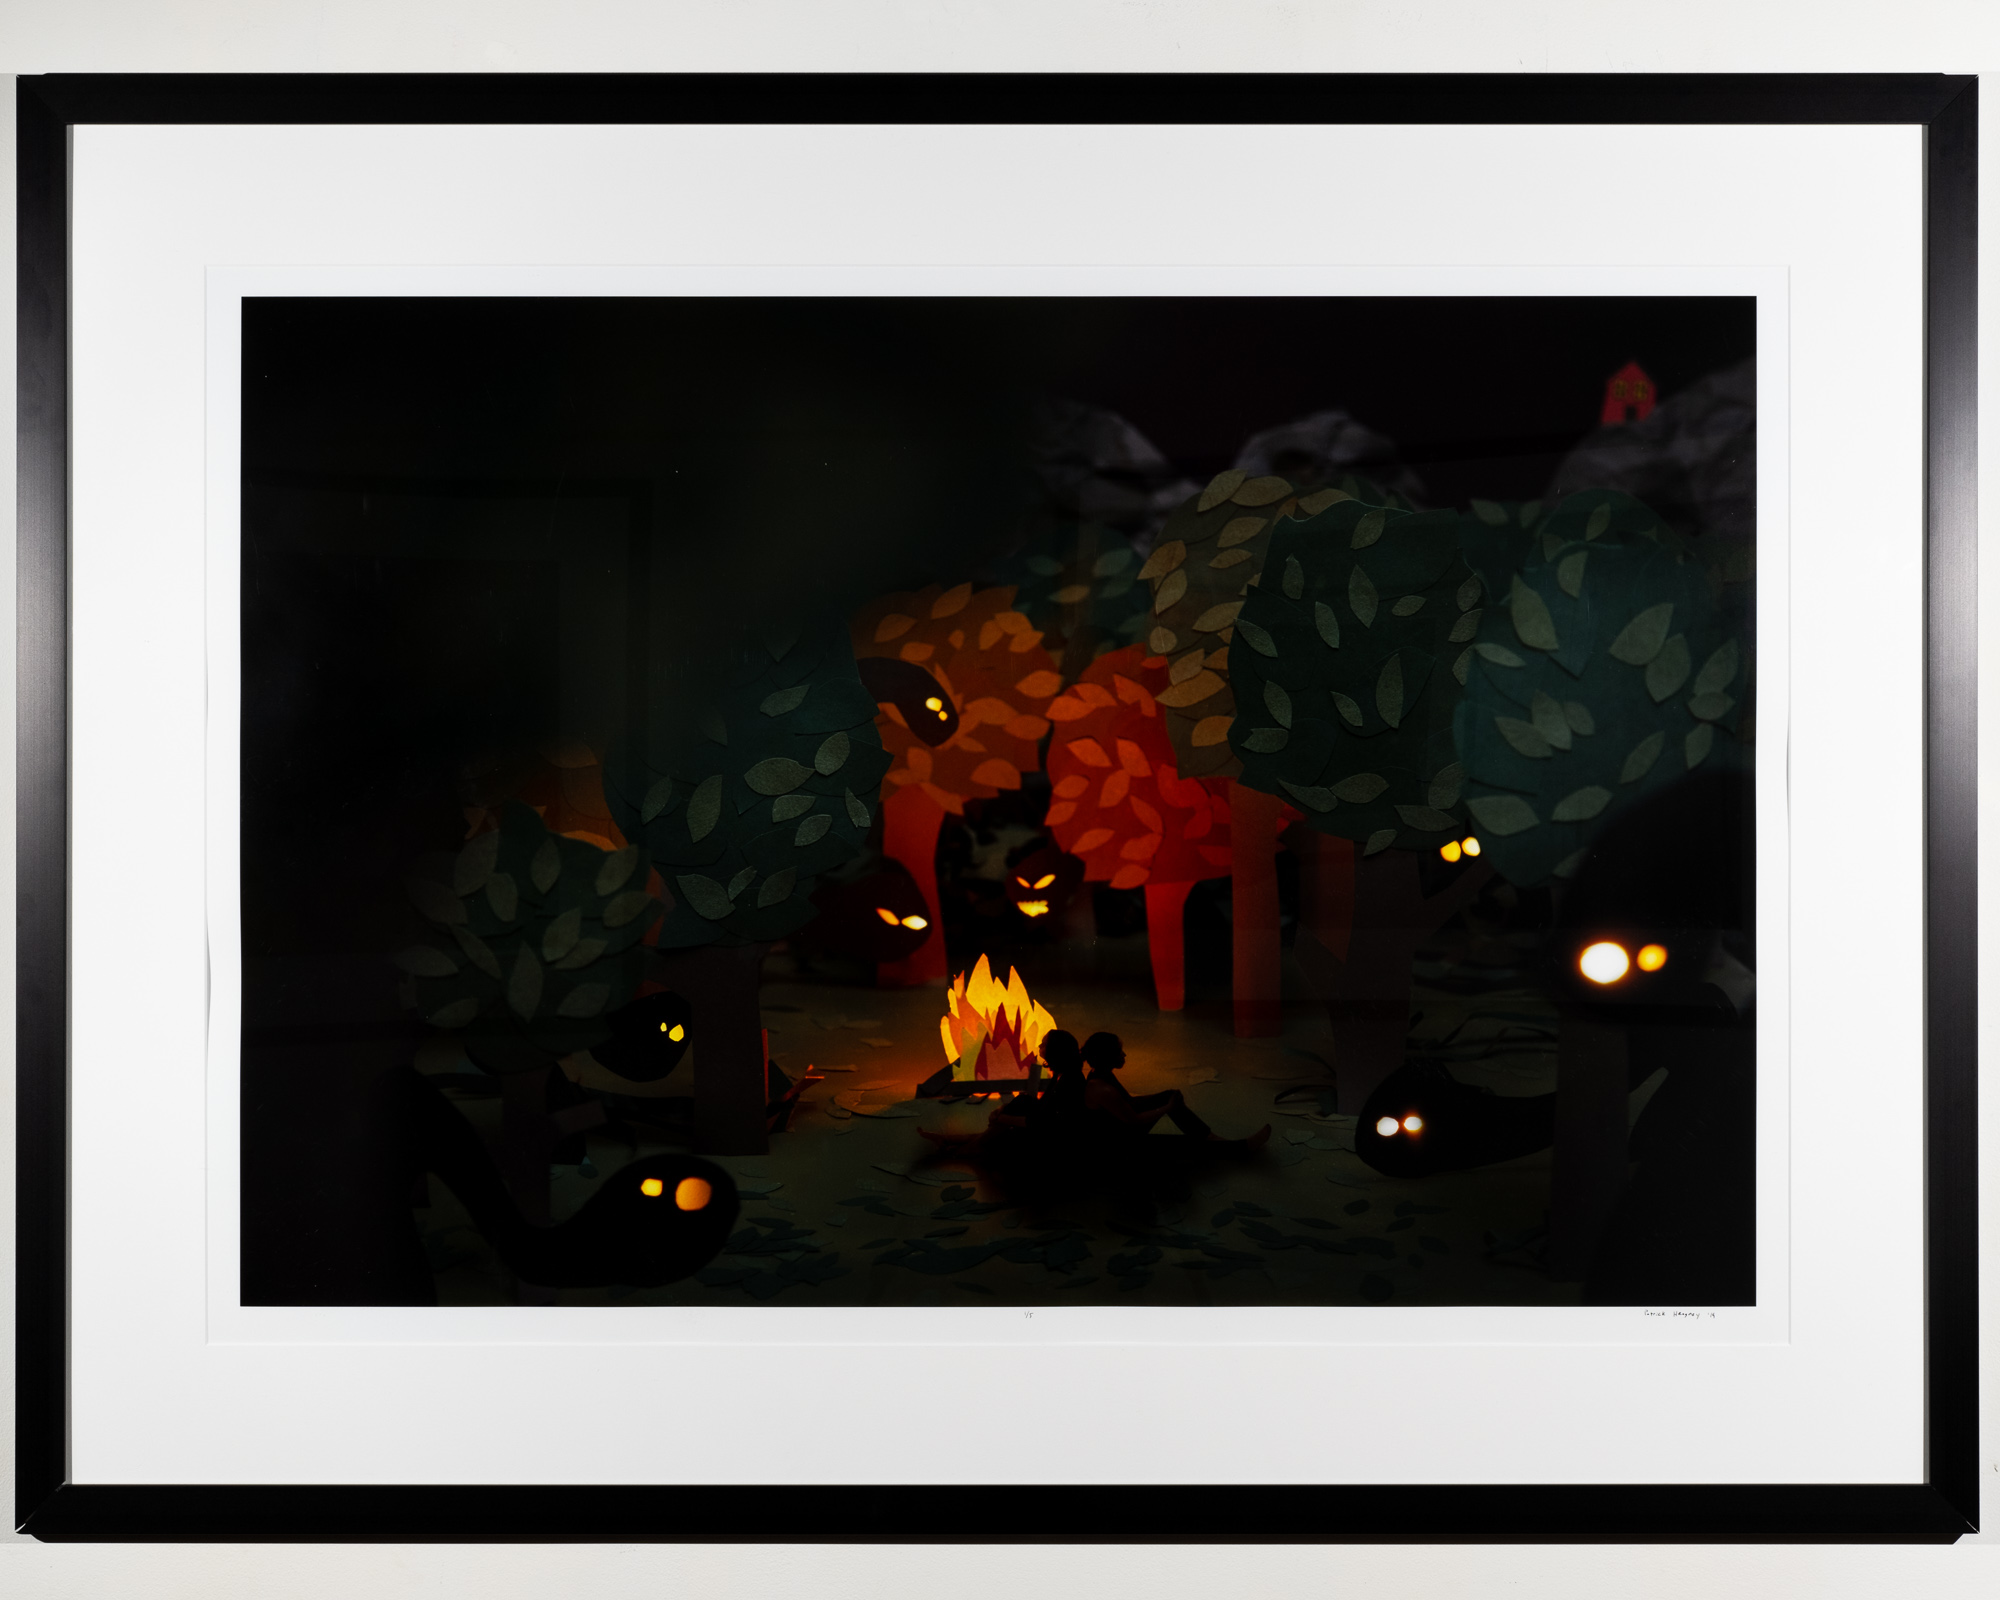 The Night is Long   Archival Pigment Print  54 x 41 inches PHE 126G